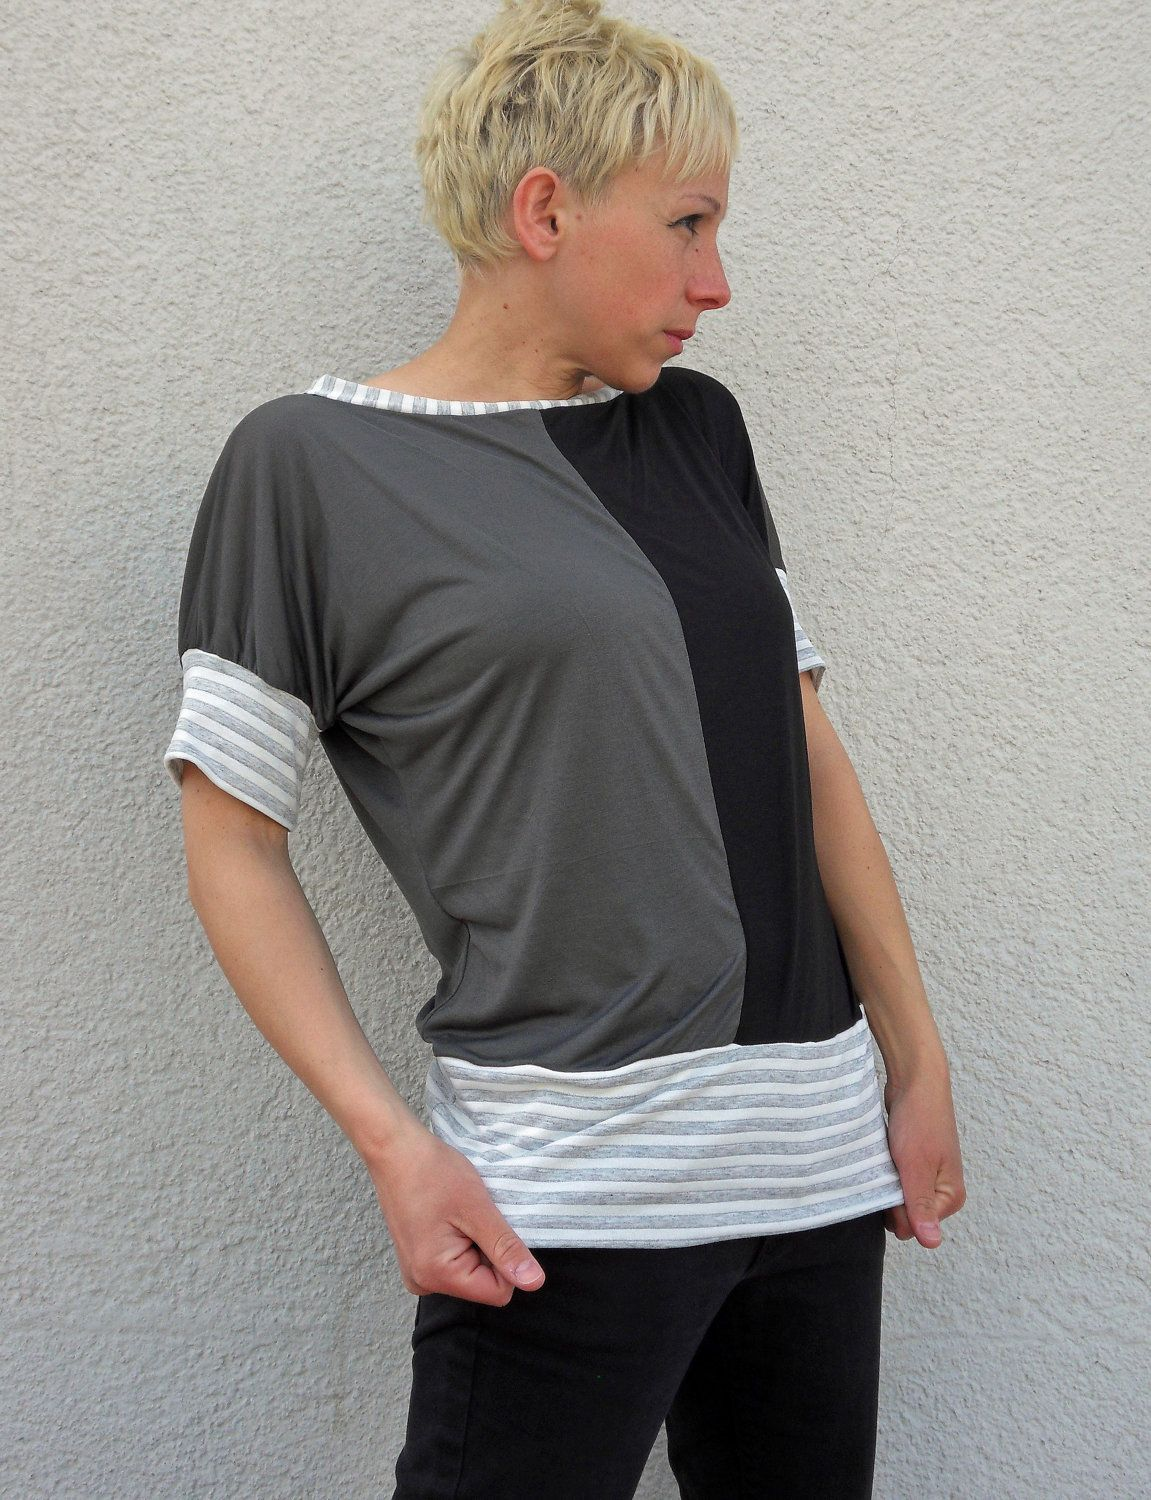 batwing sleeveless shirt in black and grey by sunflowerdesign. €29,00, via Etsy.